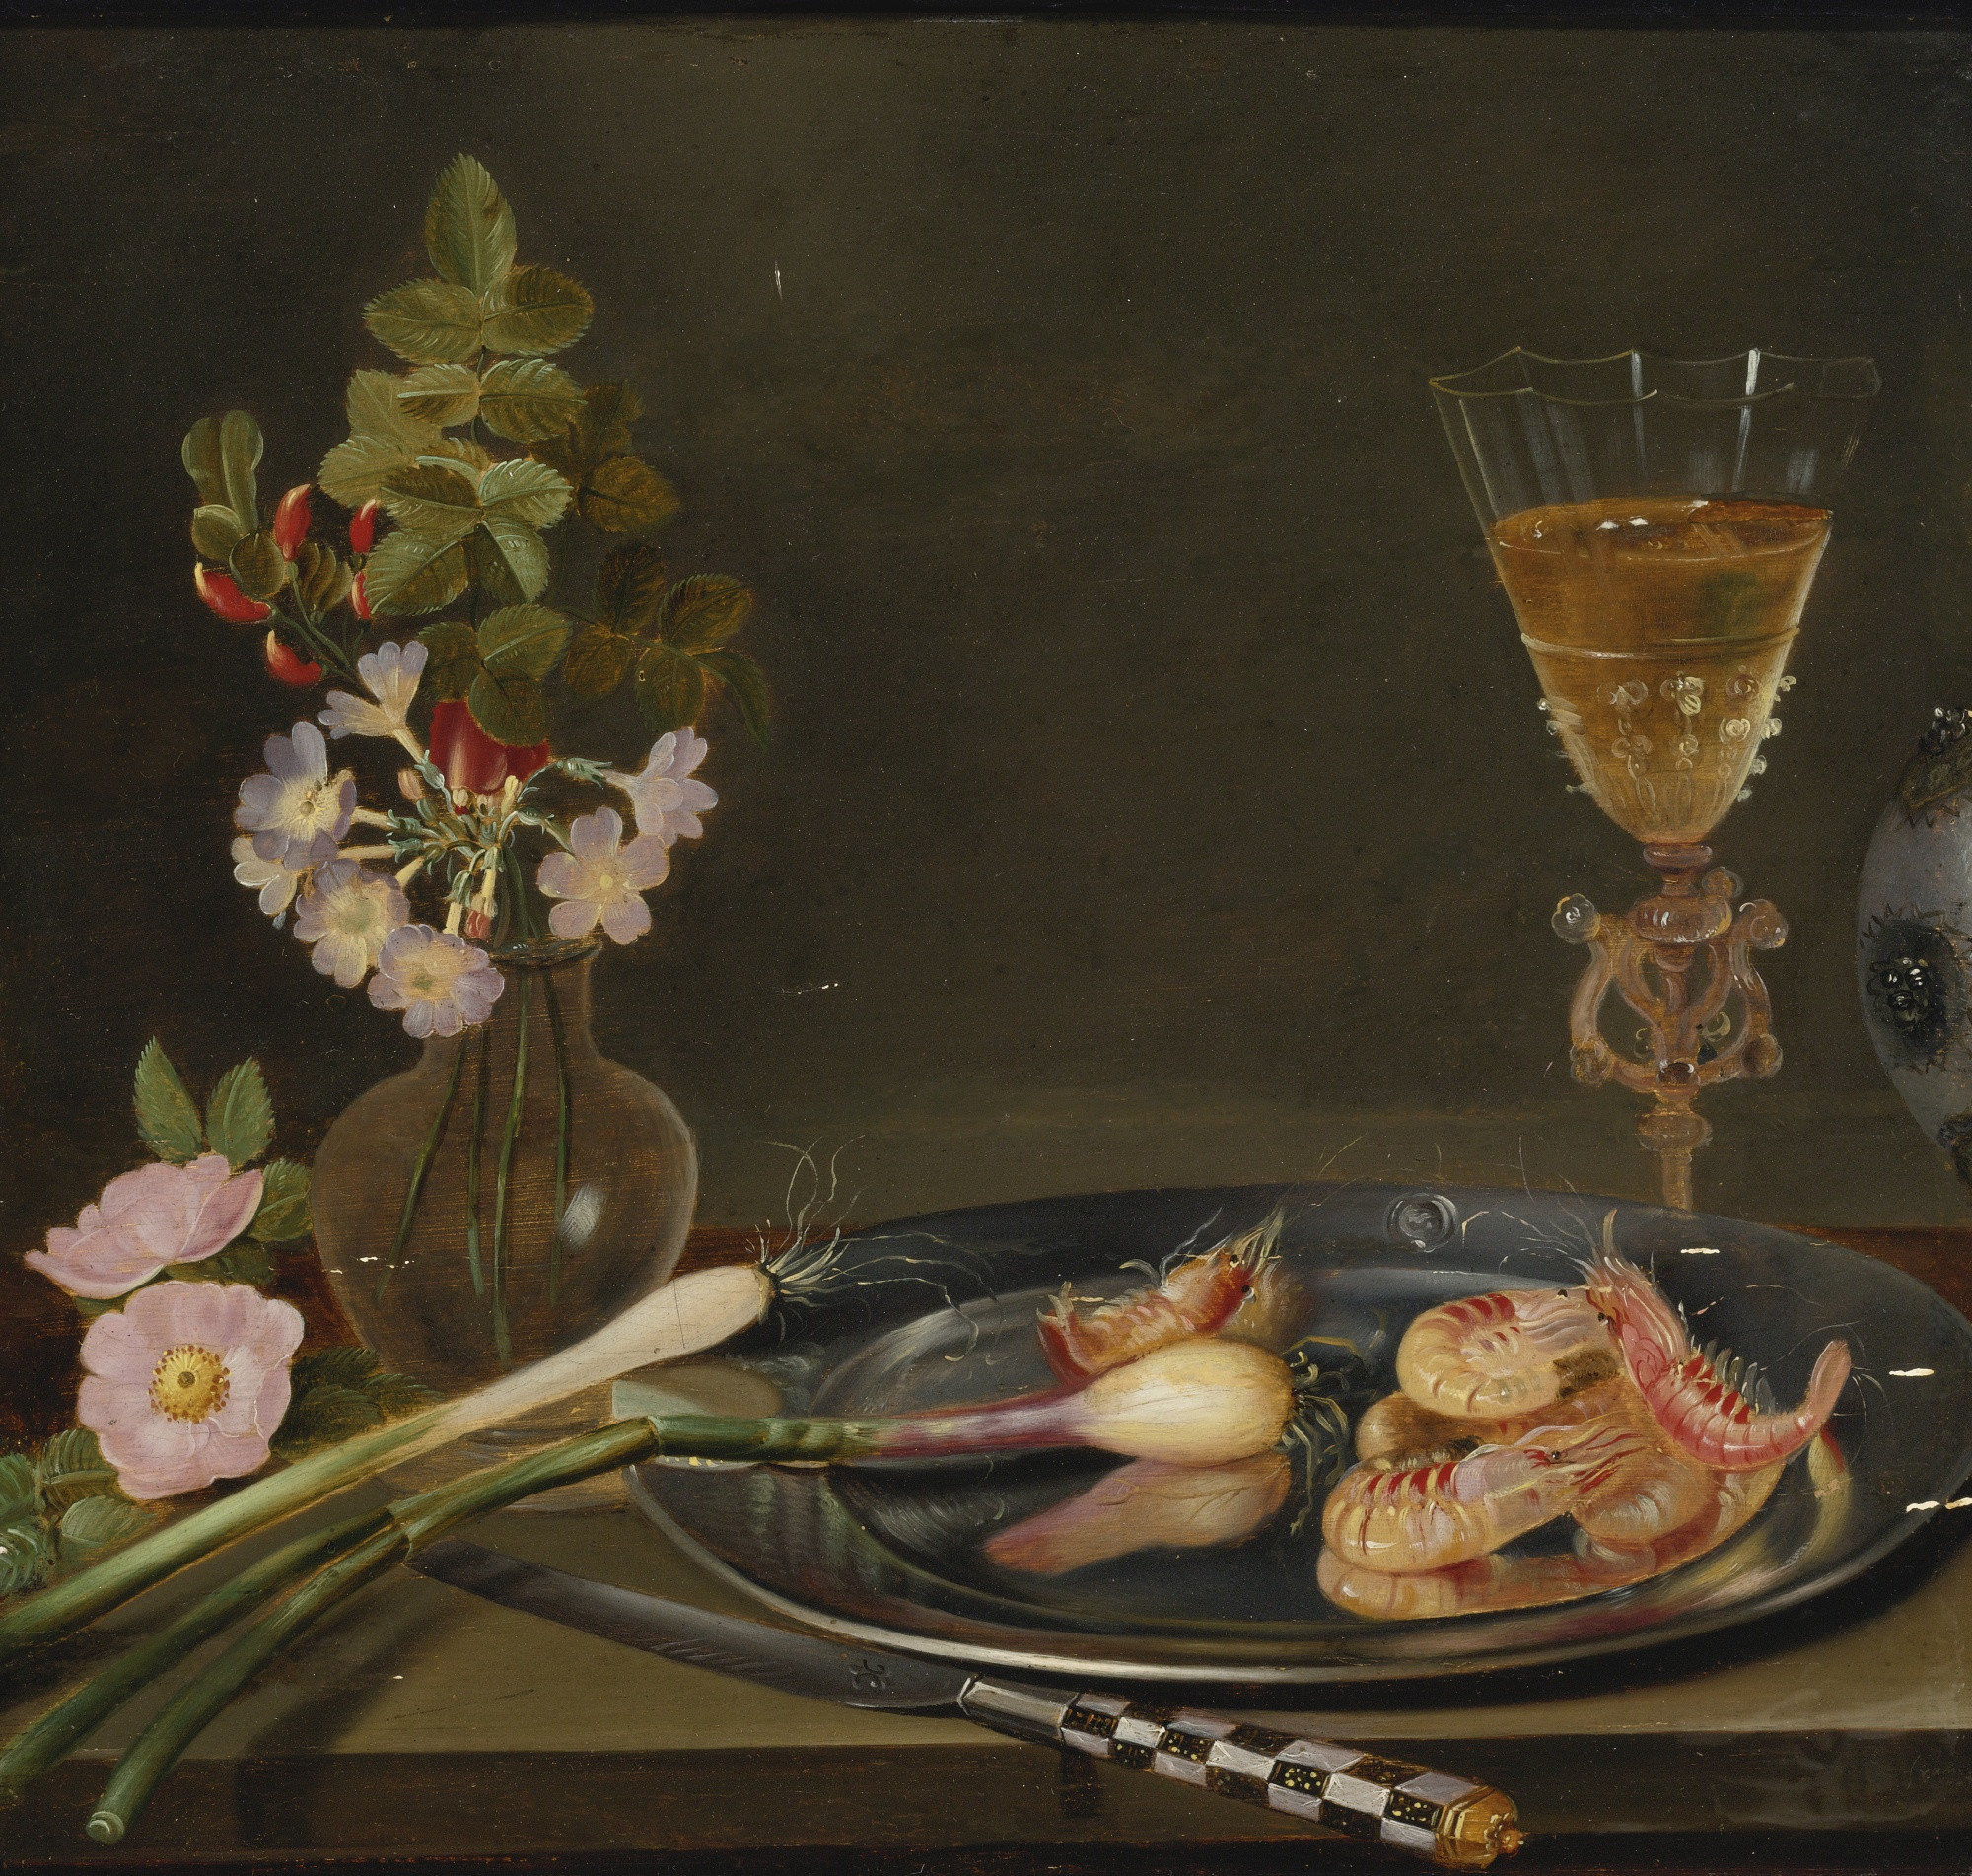 giant champagne glass vase of frans ykens wikipedia throughout still life with shrimp ramps flowers and a glass vase